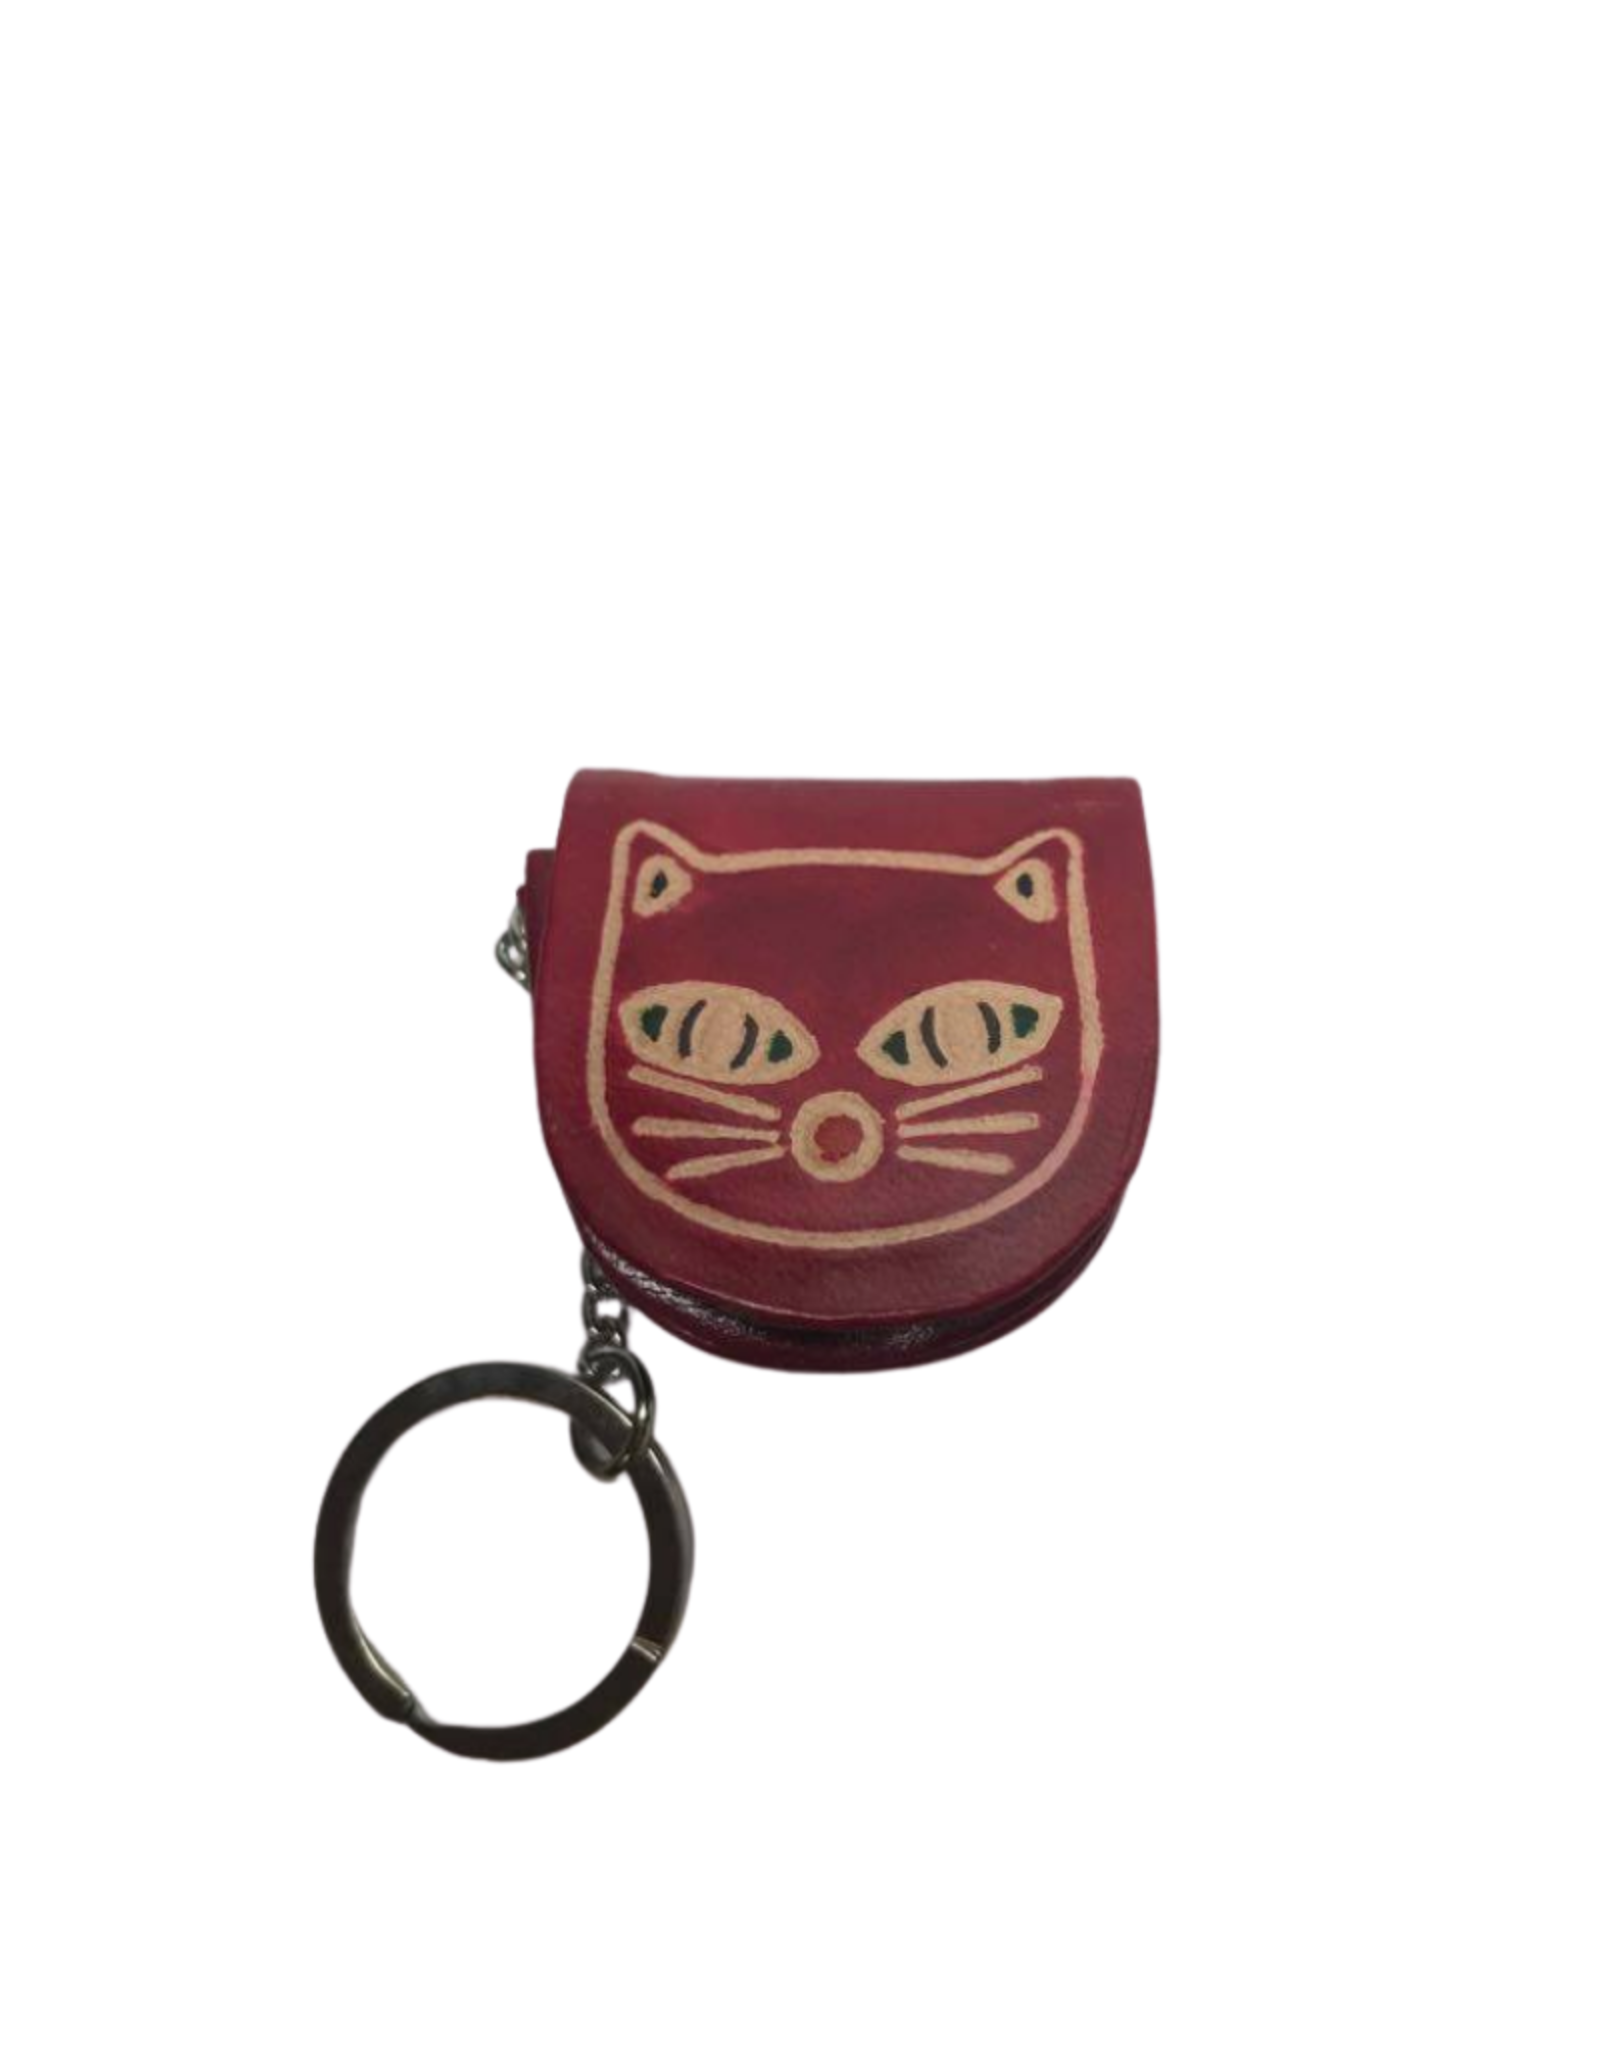 Ten Thousand Villages Kitty Keychain and Coin Purse